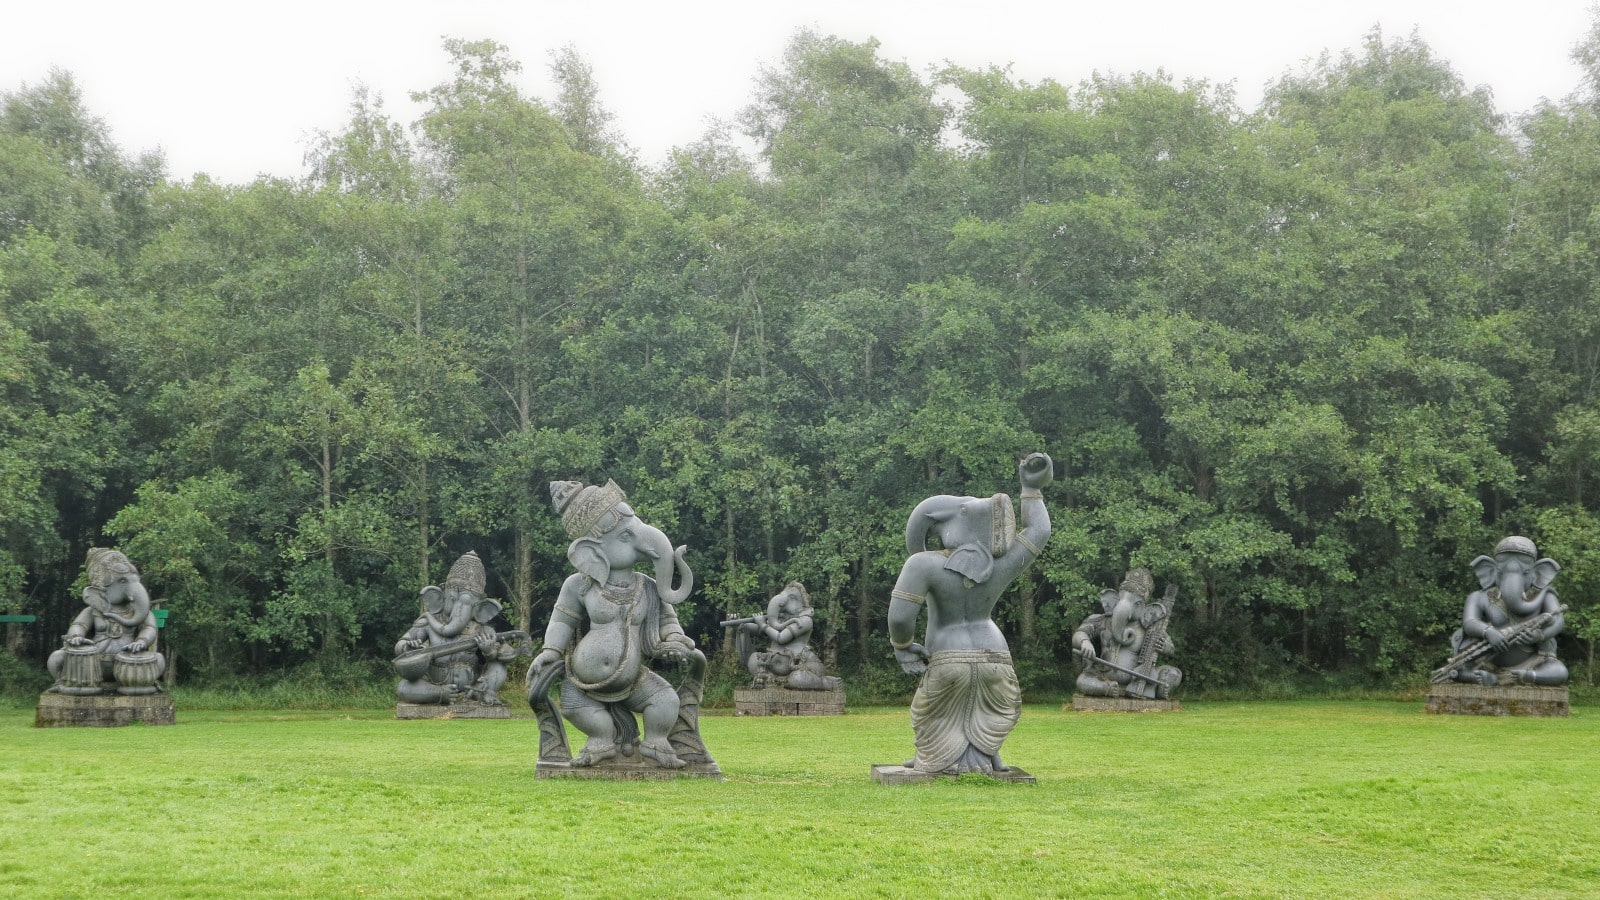 Victor's Way Indian Sculpture Park is off the beaten path in Ireland